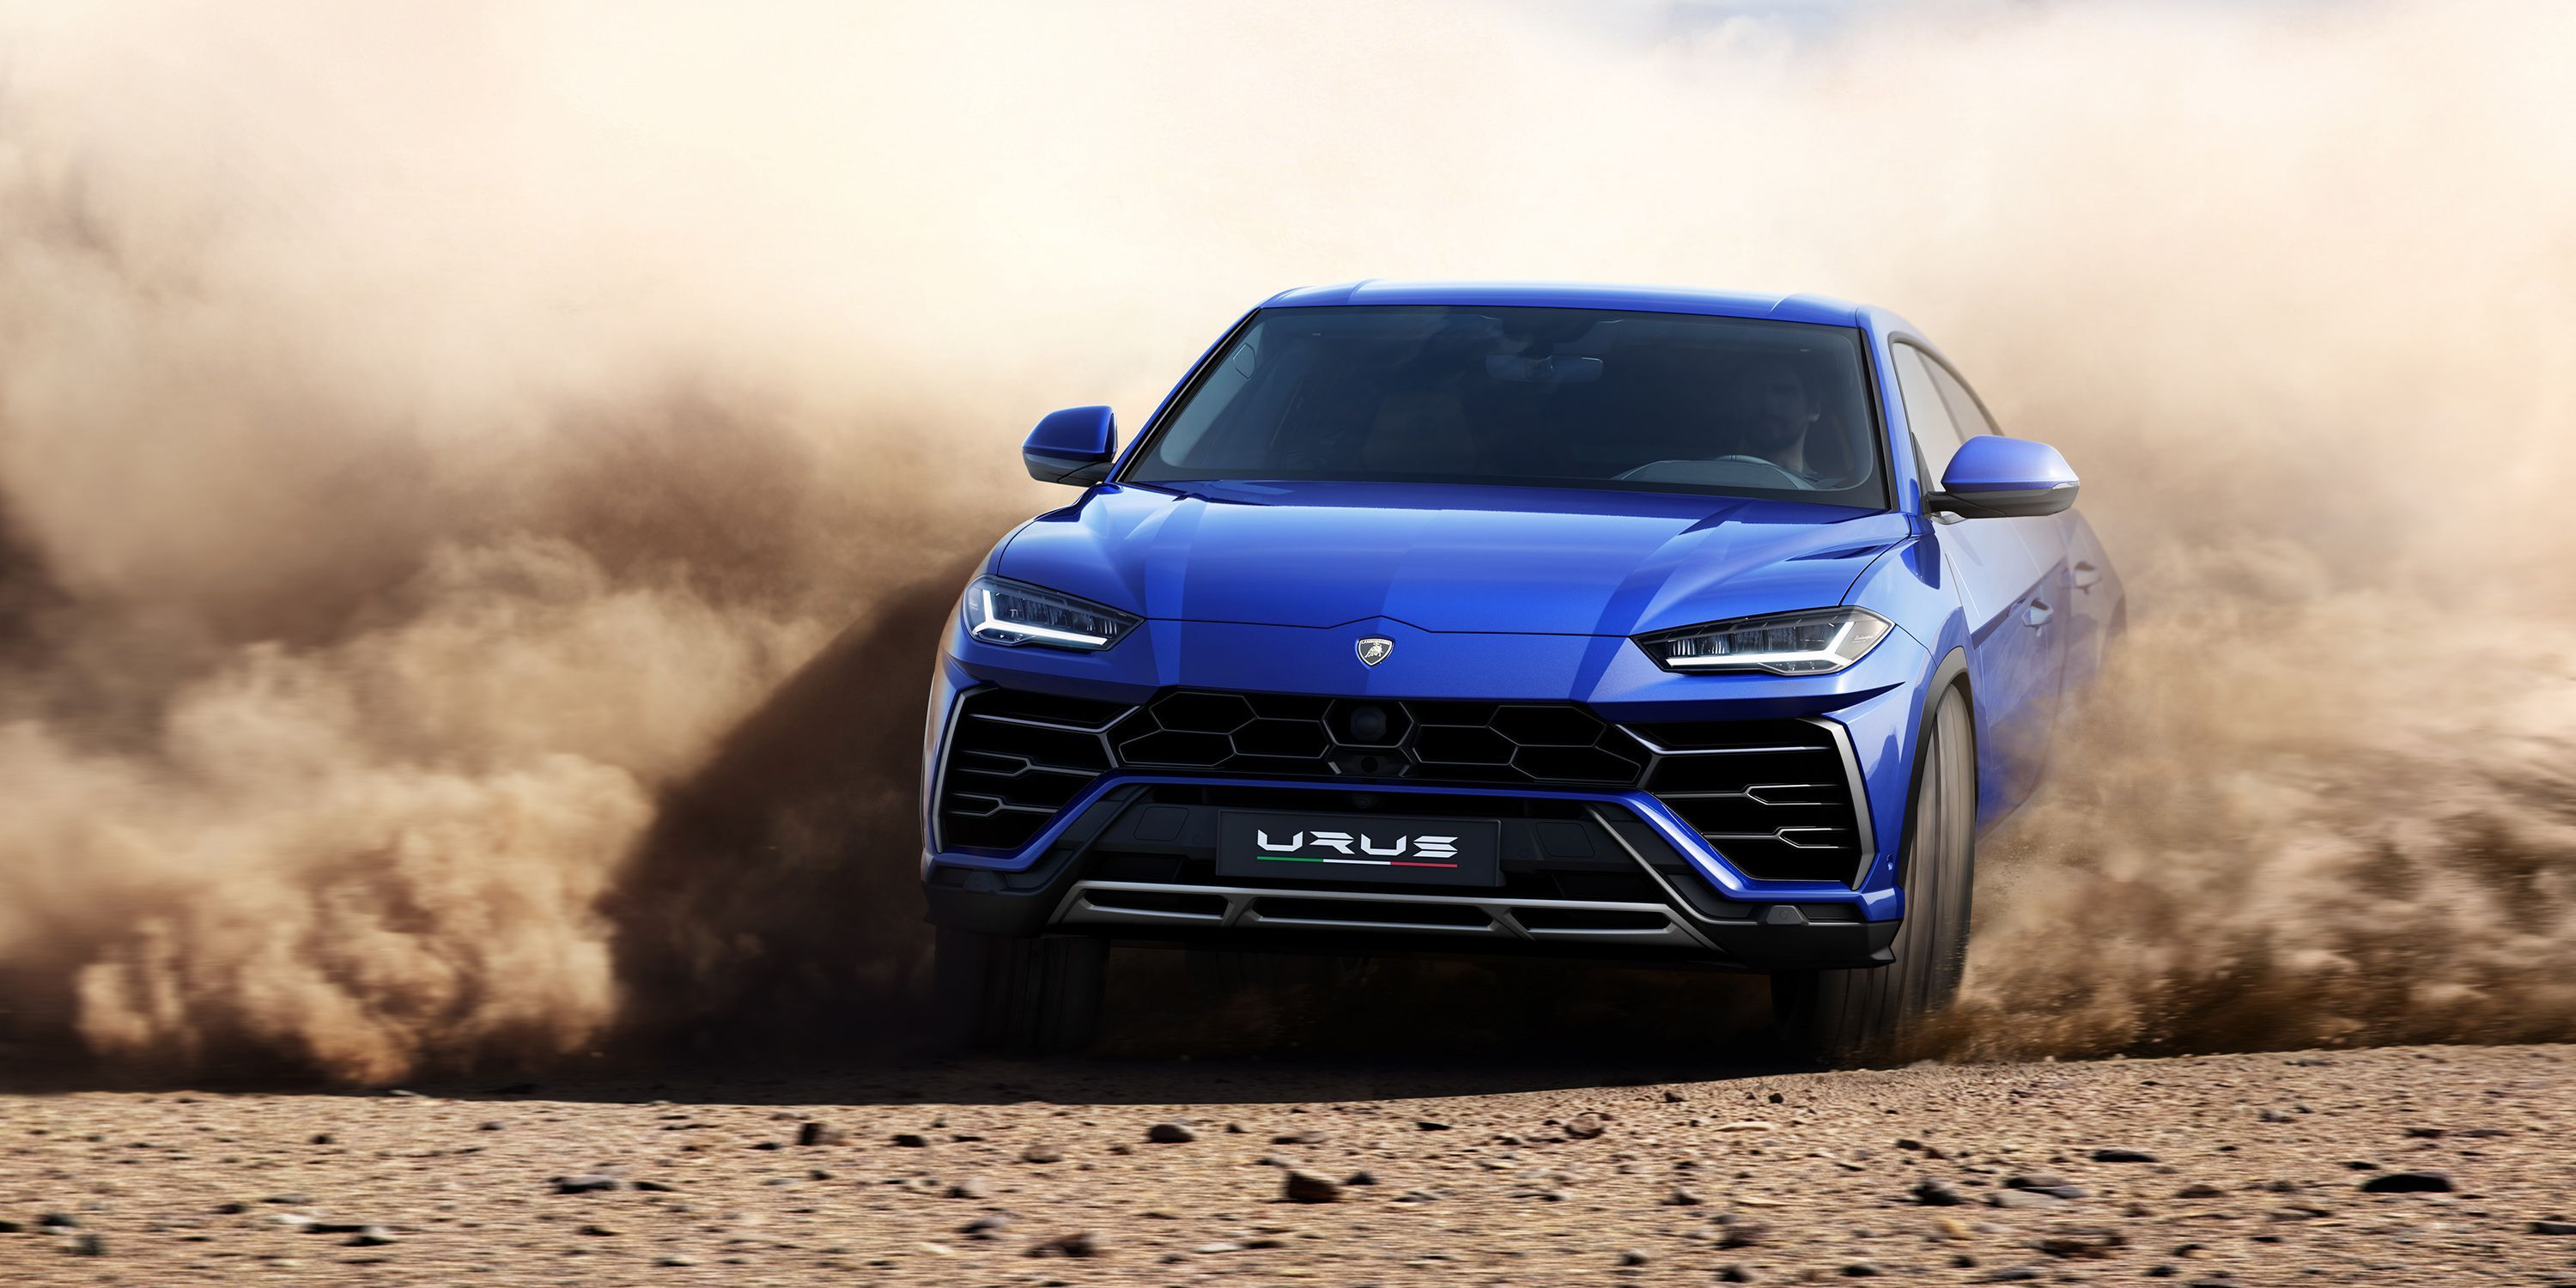 10 Fastest SUVs for 2018 - Most Powerful SUVs with 550 Horsepower